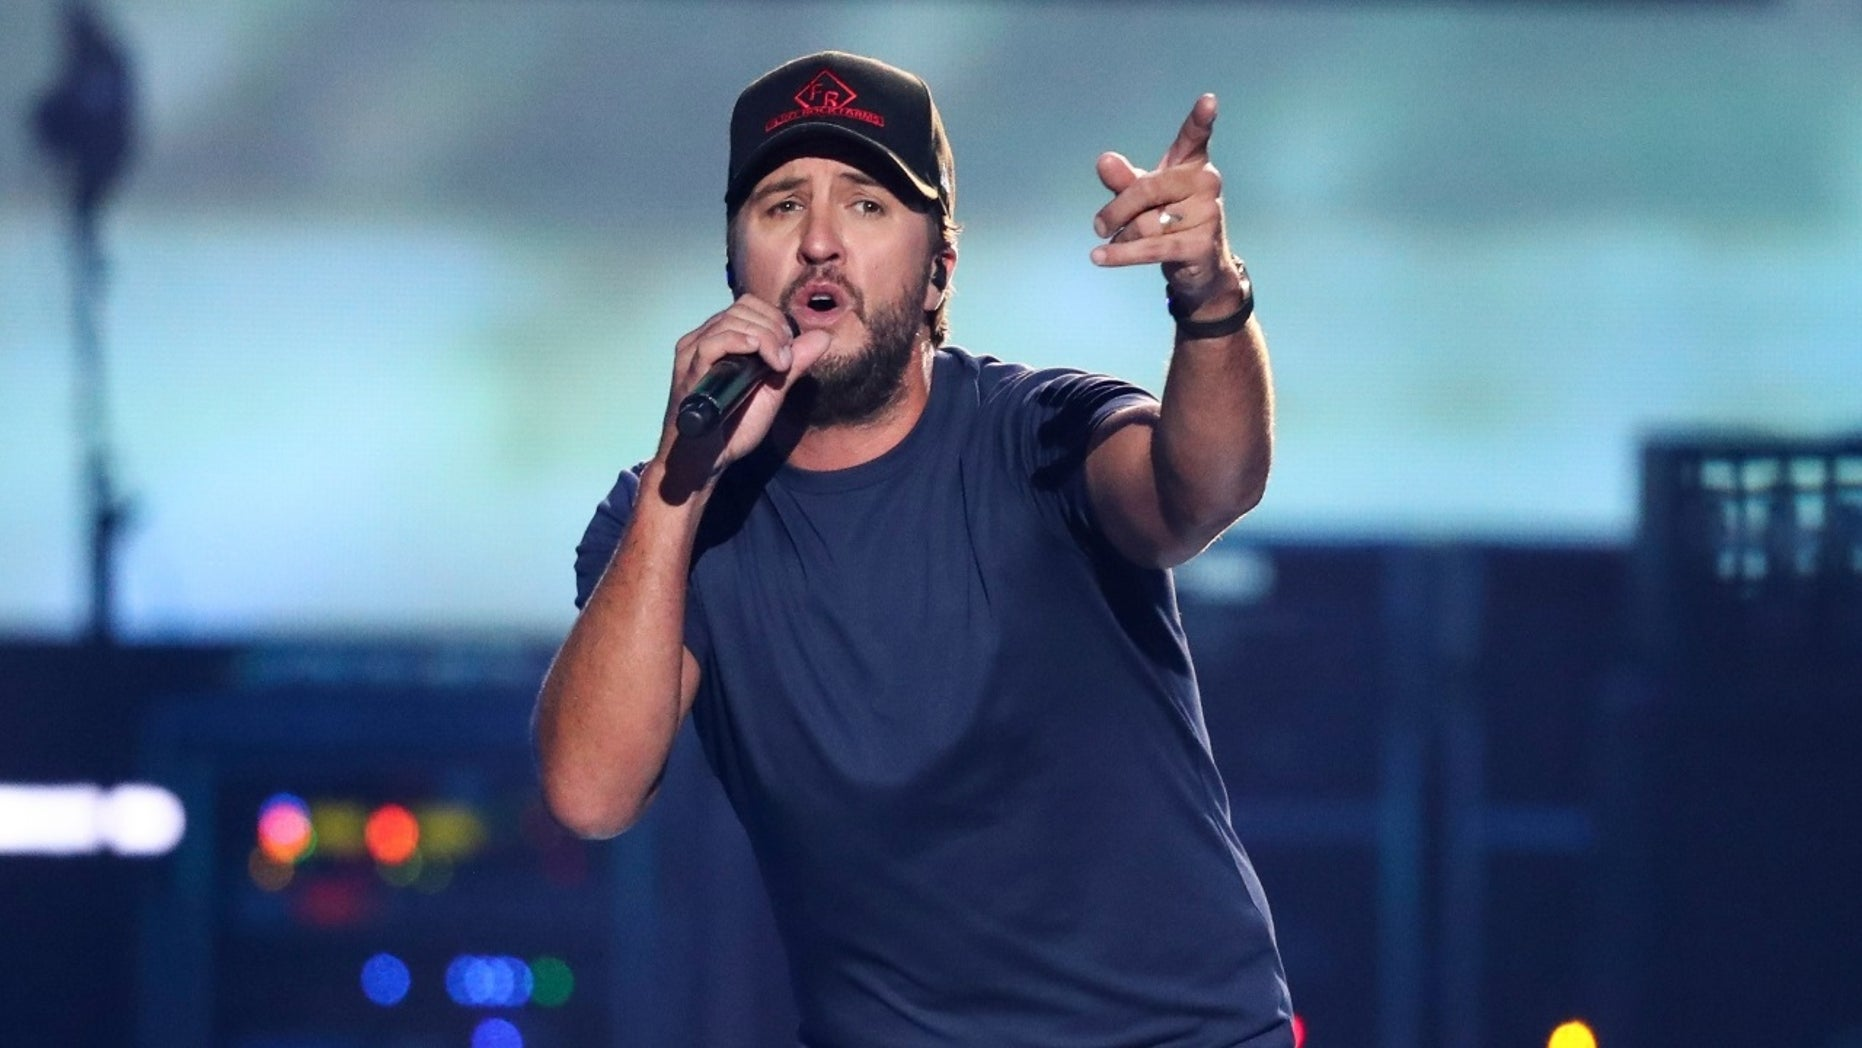 Luke Bryan said he is proud of his sons and nephew's good manners.